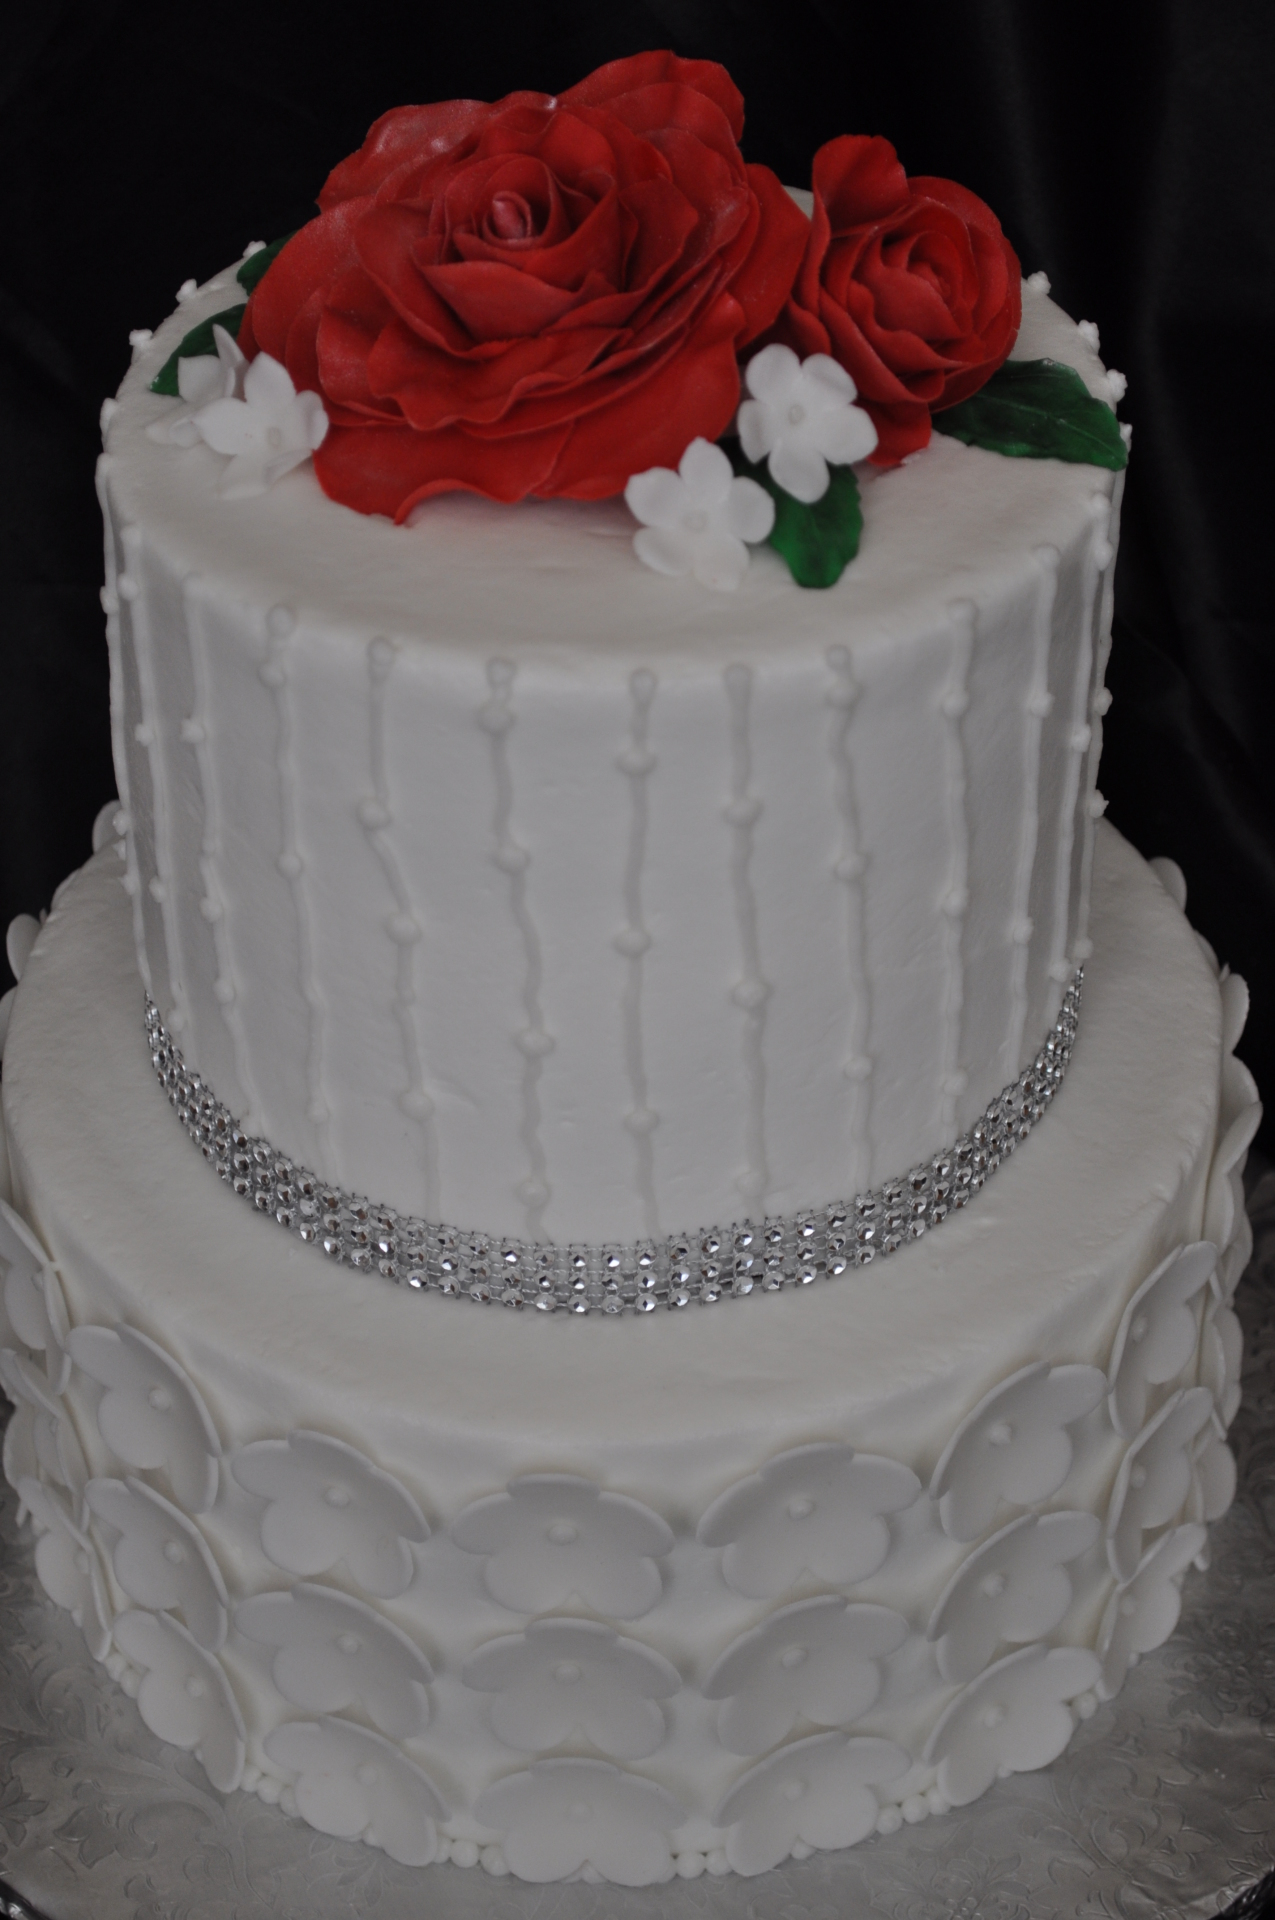 Flower tier and red sugar roses